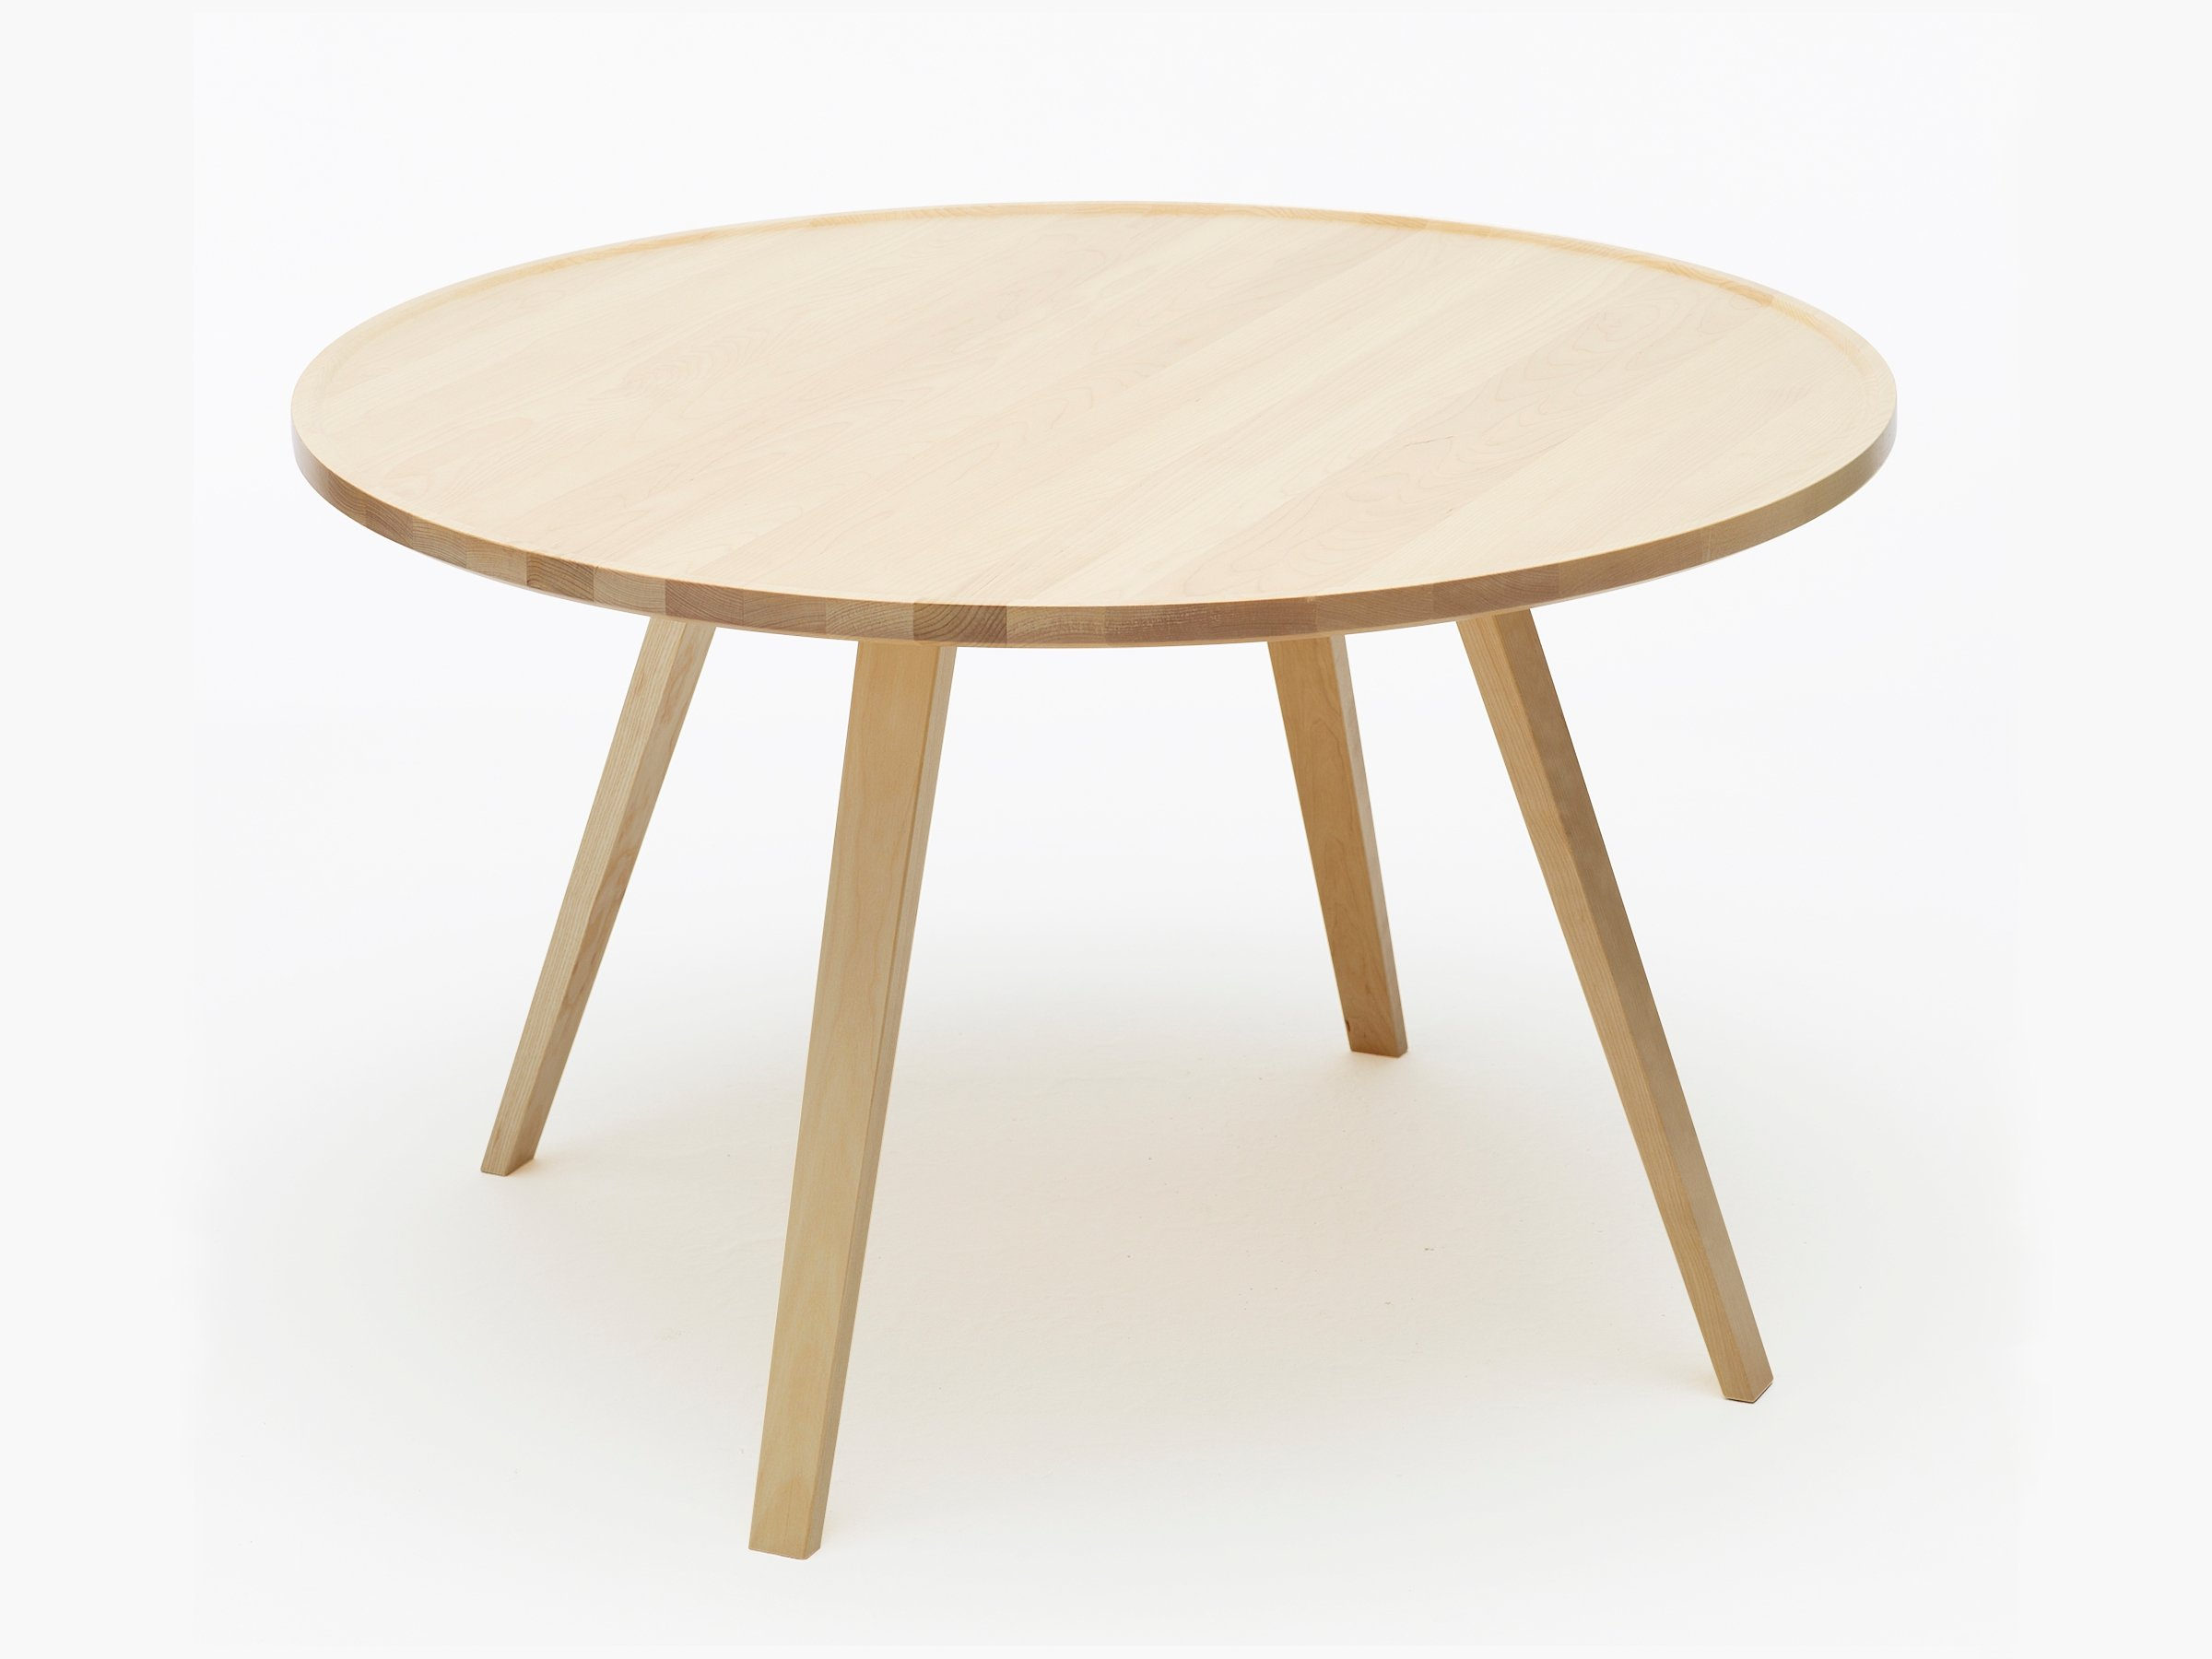 Table basse en bois ronde for Tables basses rondes en bois